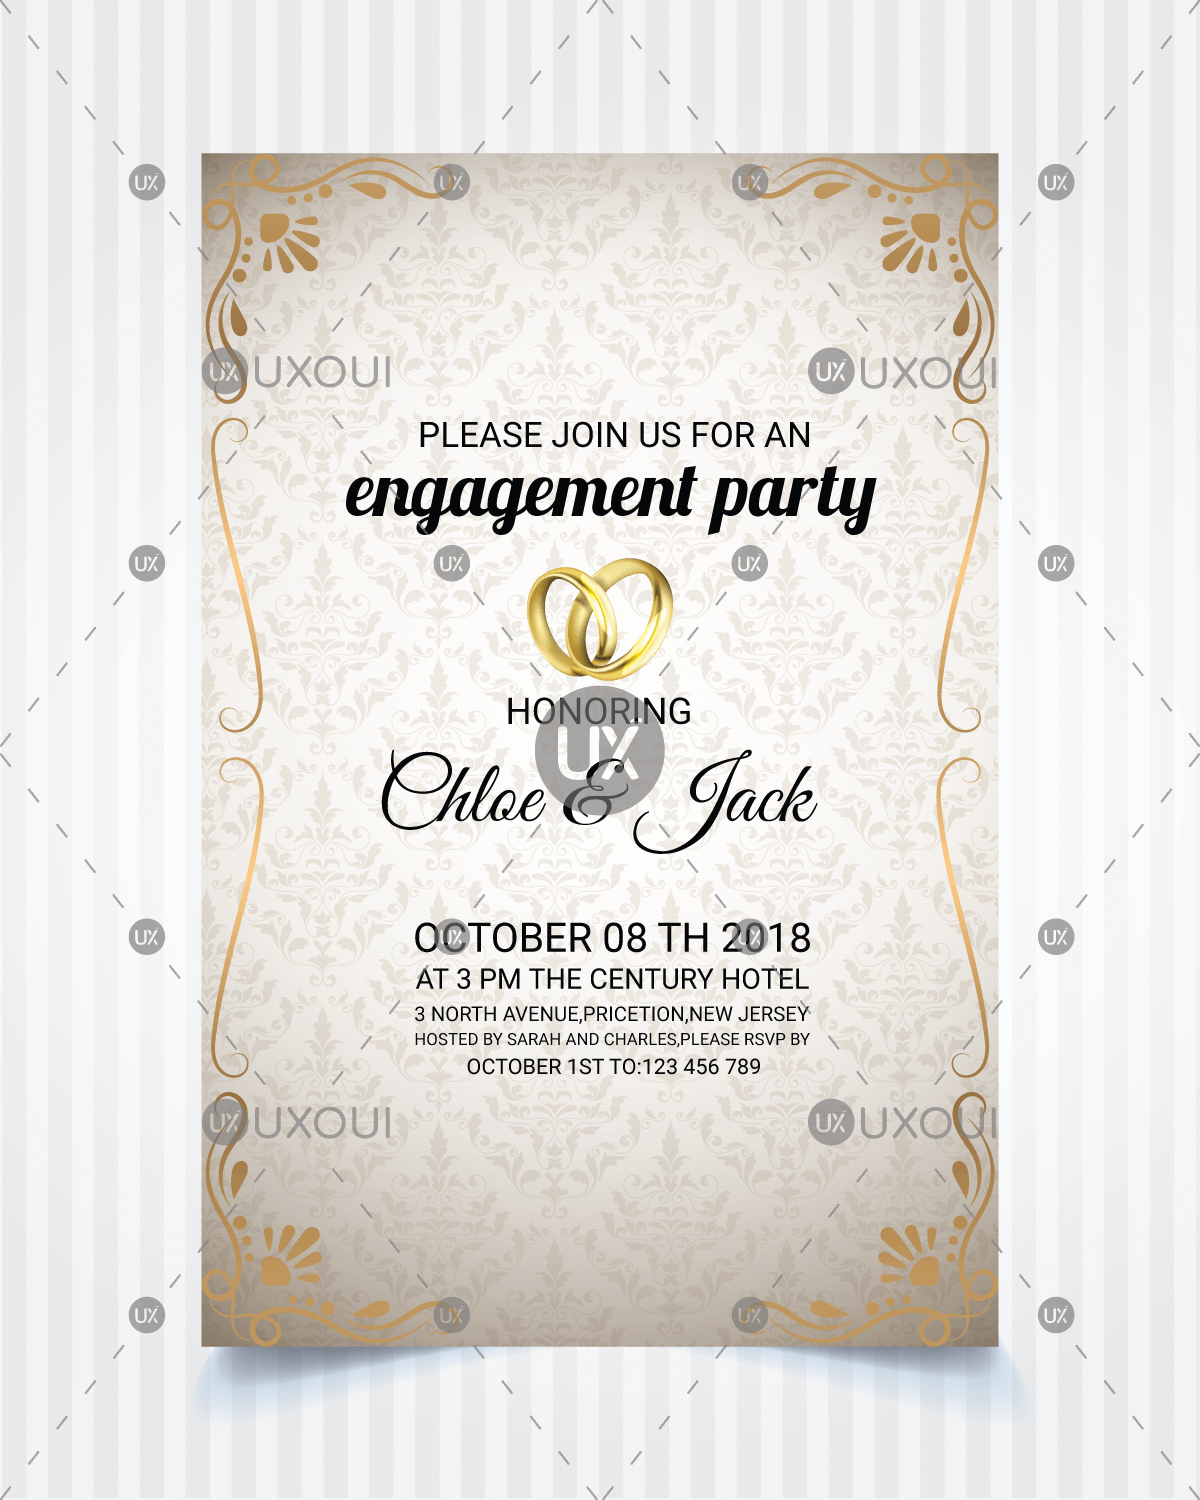 Vintage style wedding engagement party invitation card template design  vector | UXoUI